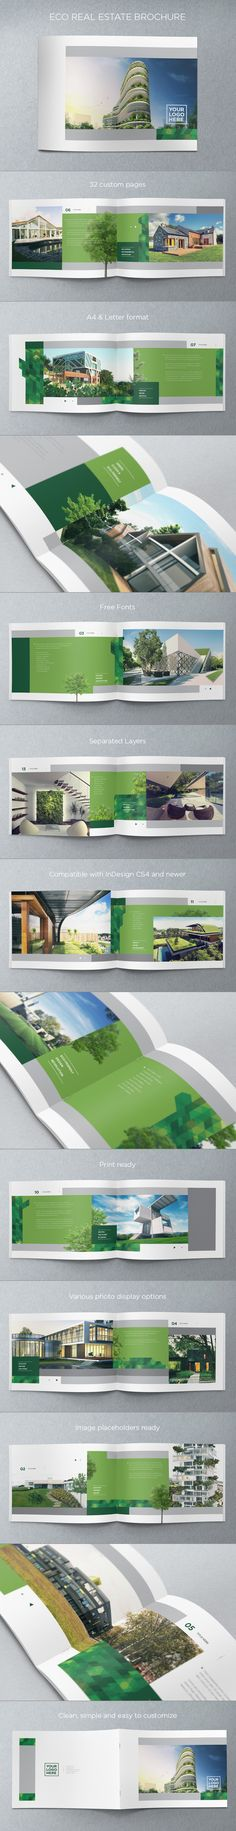 Goodwill Annual Report by Lauren Coleman (via Behance) Editorial